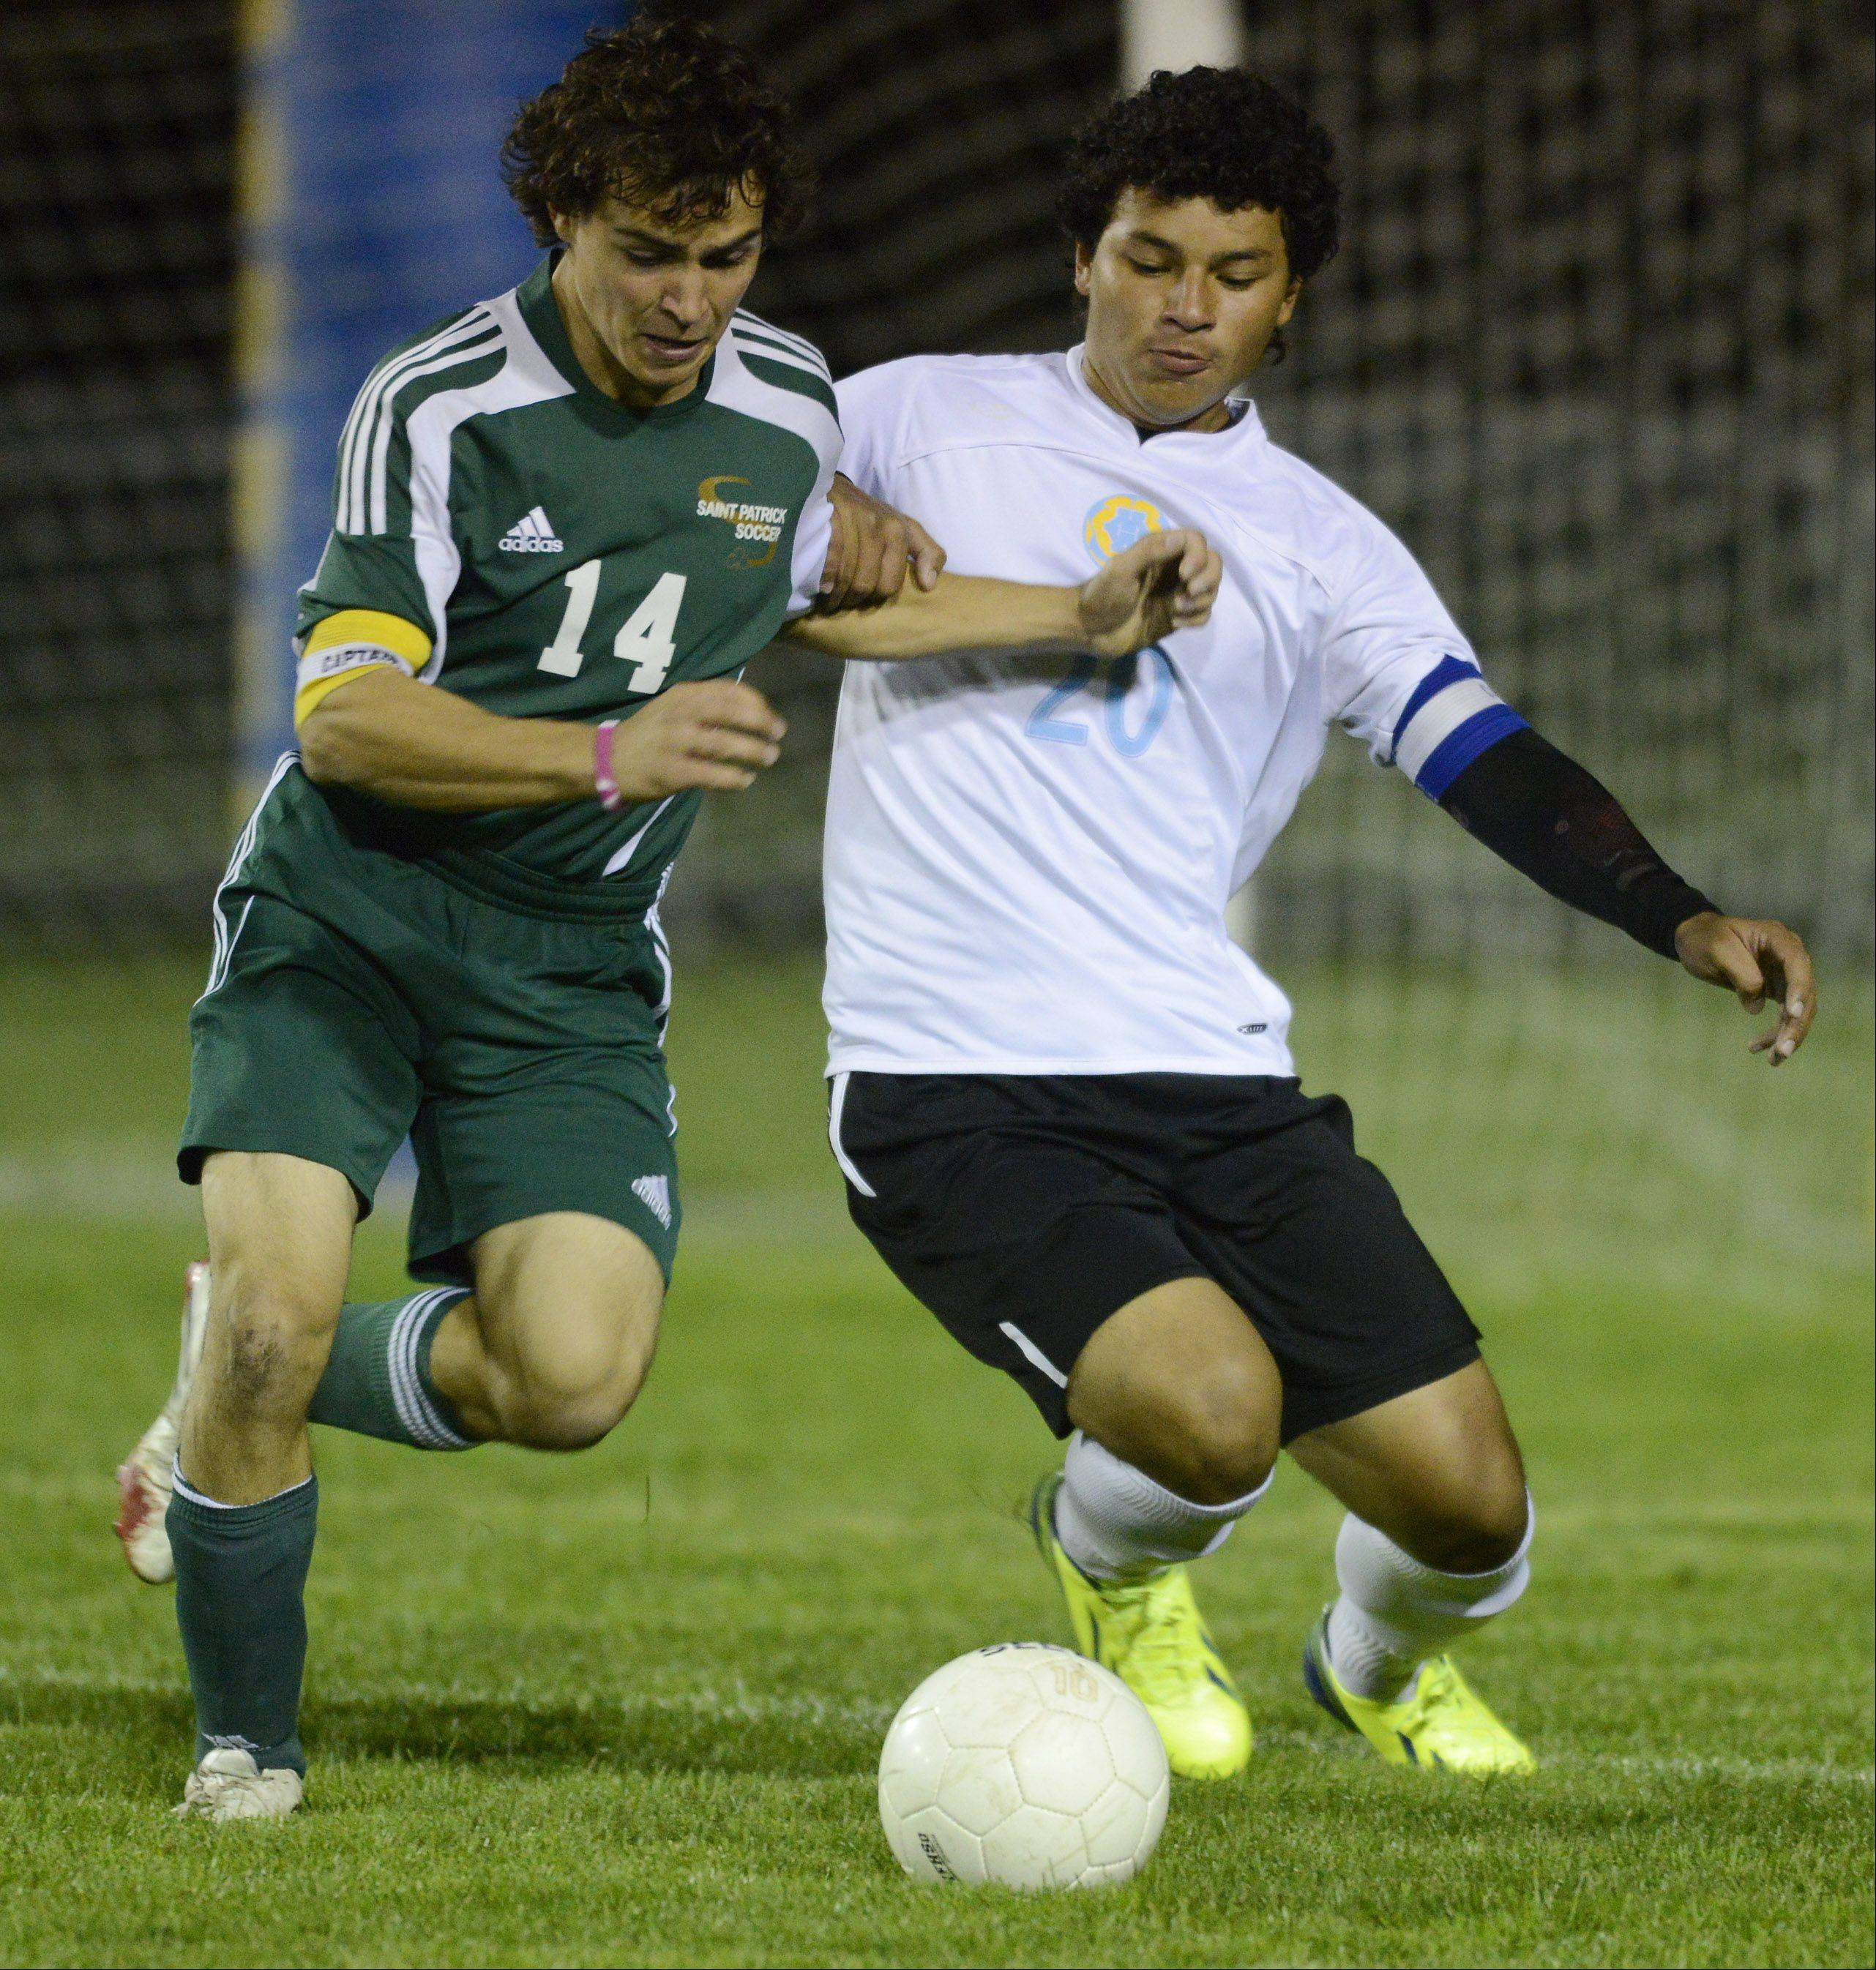 St. Patrick's Paul Samatas, left, and Maine West's Nelson Herrera make contact while pursuing the ball during Wednesday's game in Des Plaines.